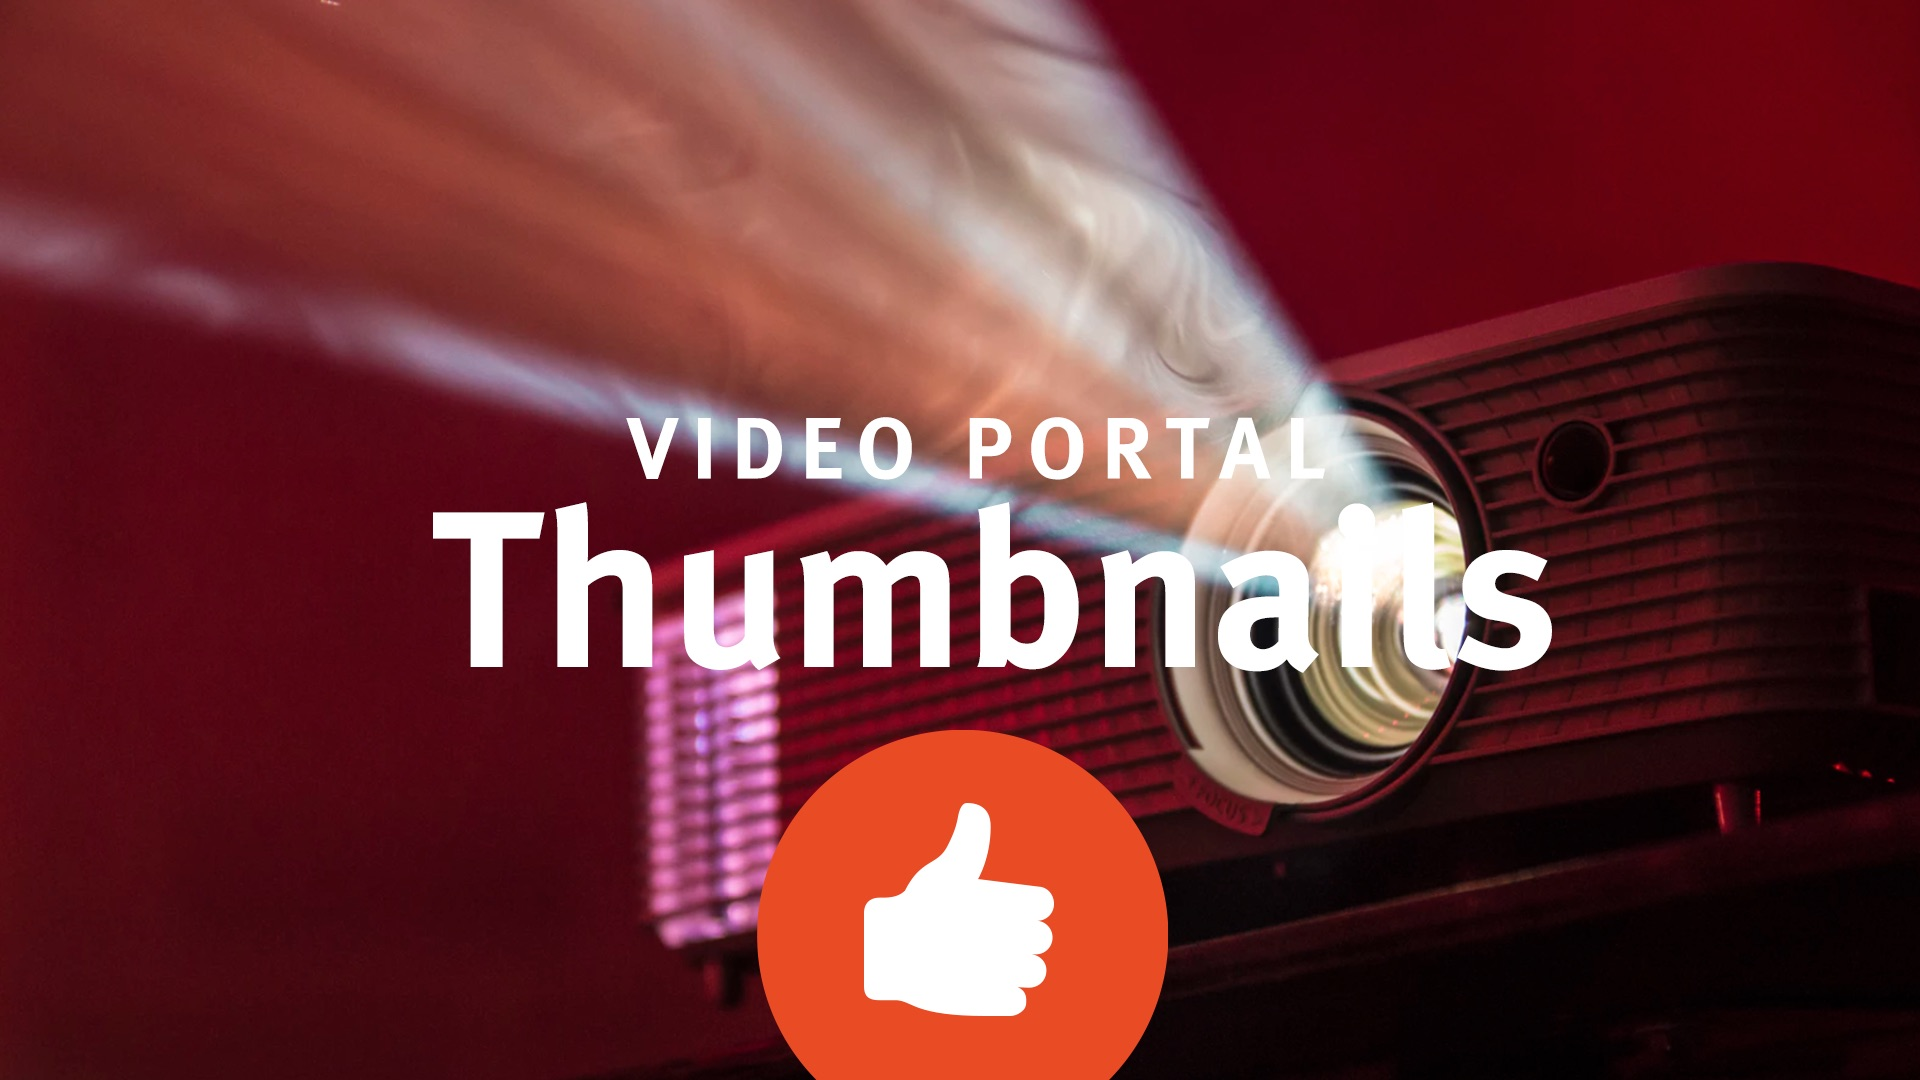 Thumbs up für unser Video-Portal